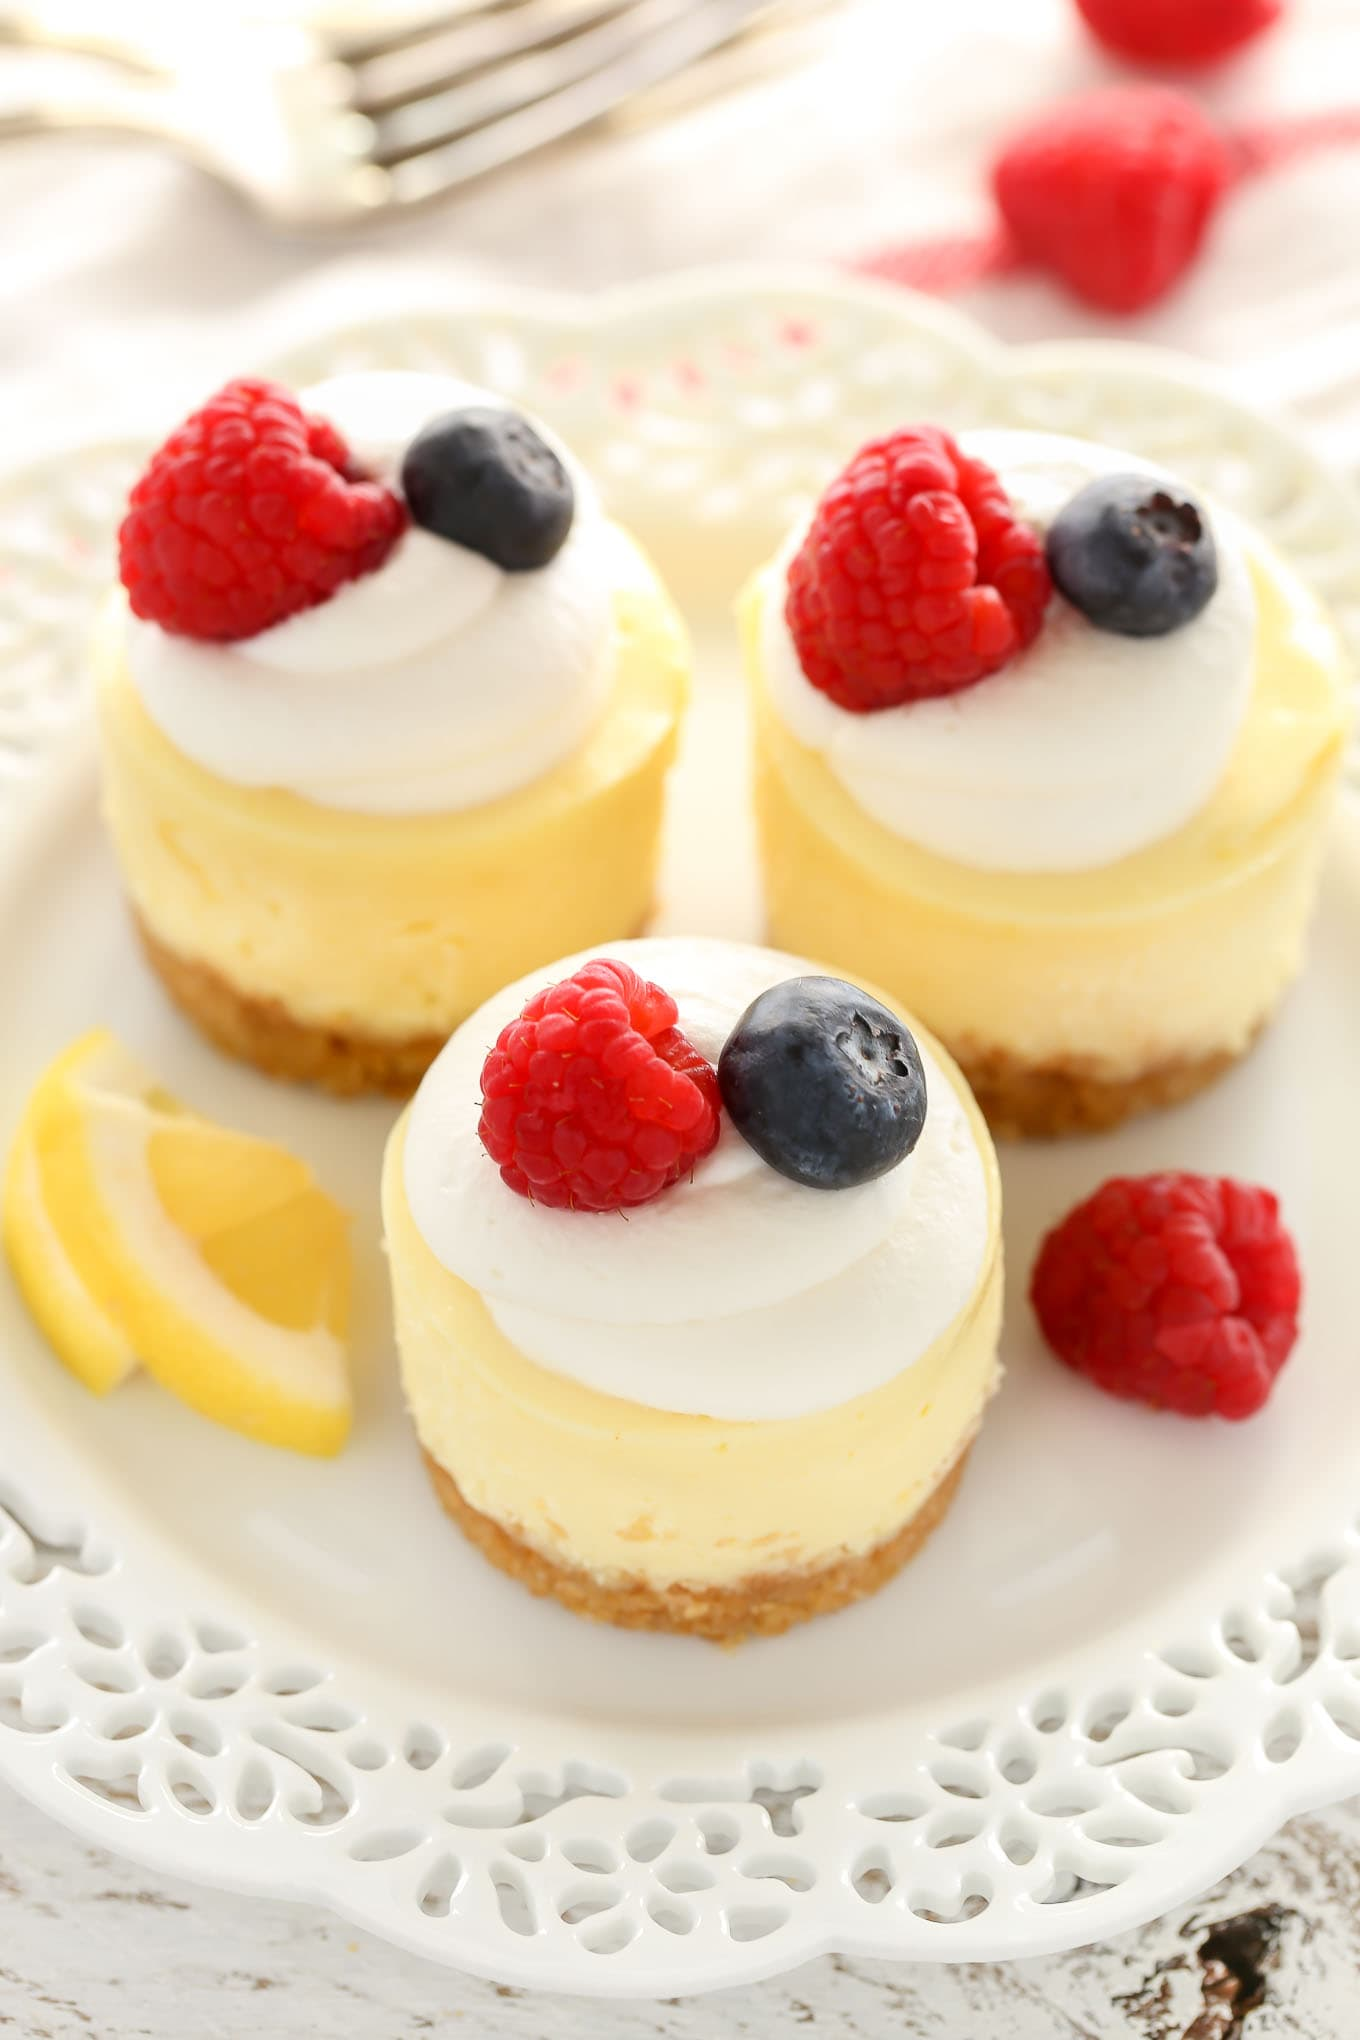 Overhead view of three mini lemon cheesecakes garnished with whipped cream and berries on a white plate. A fork rests in the background.